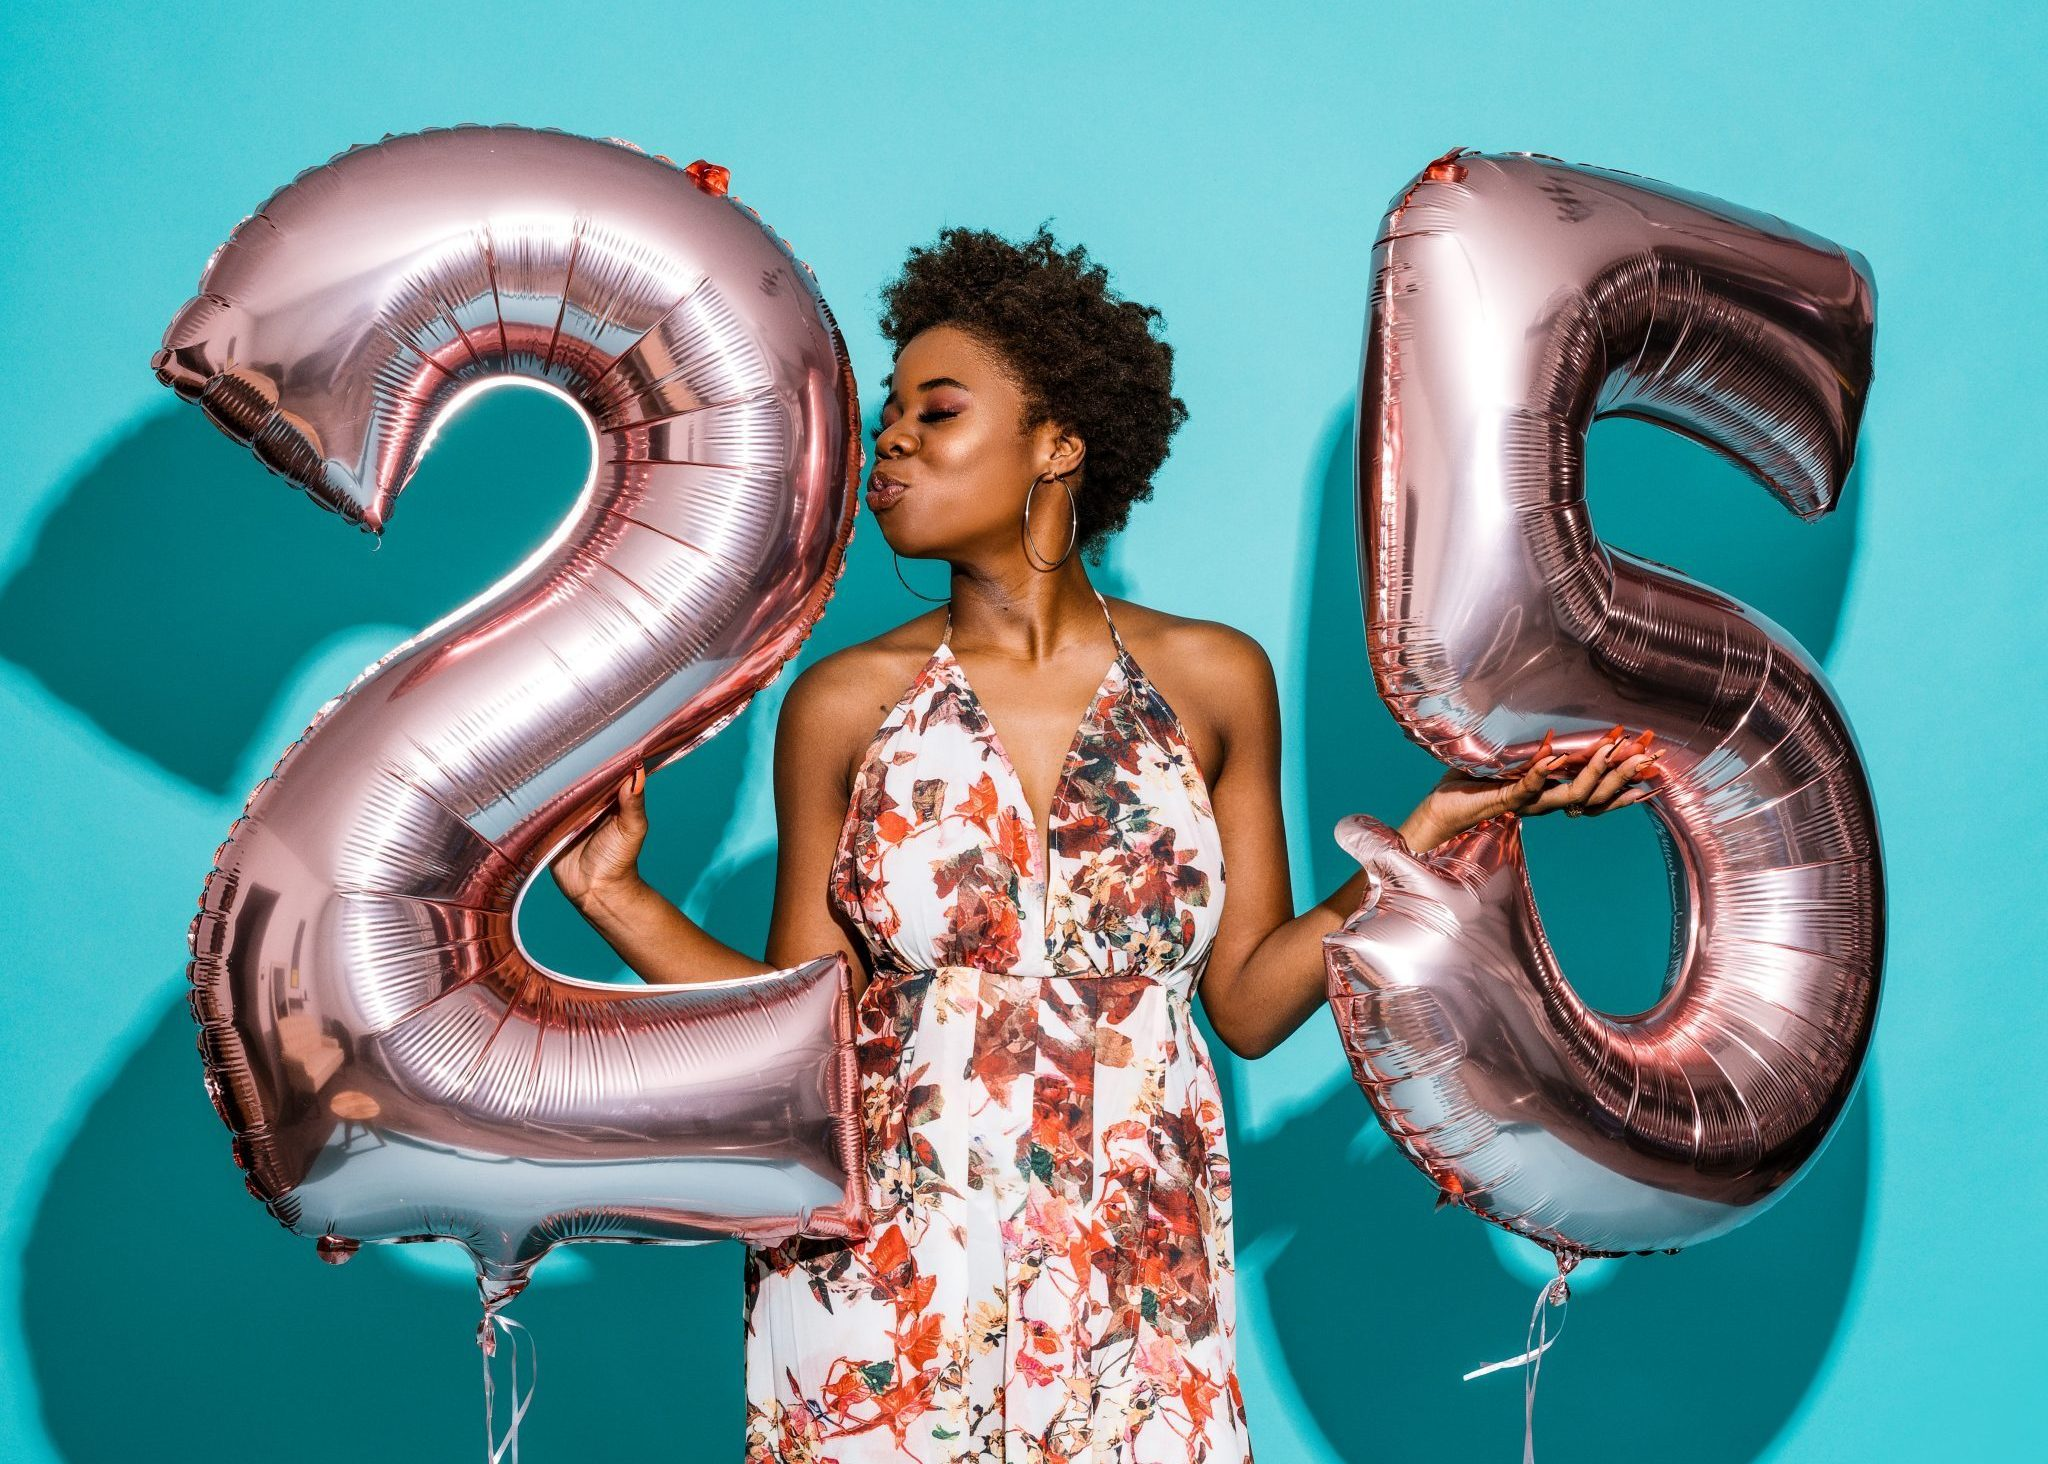 Create Memories With The Best Birthday Gift Ever: An RTW Photoshoot!